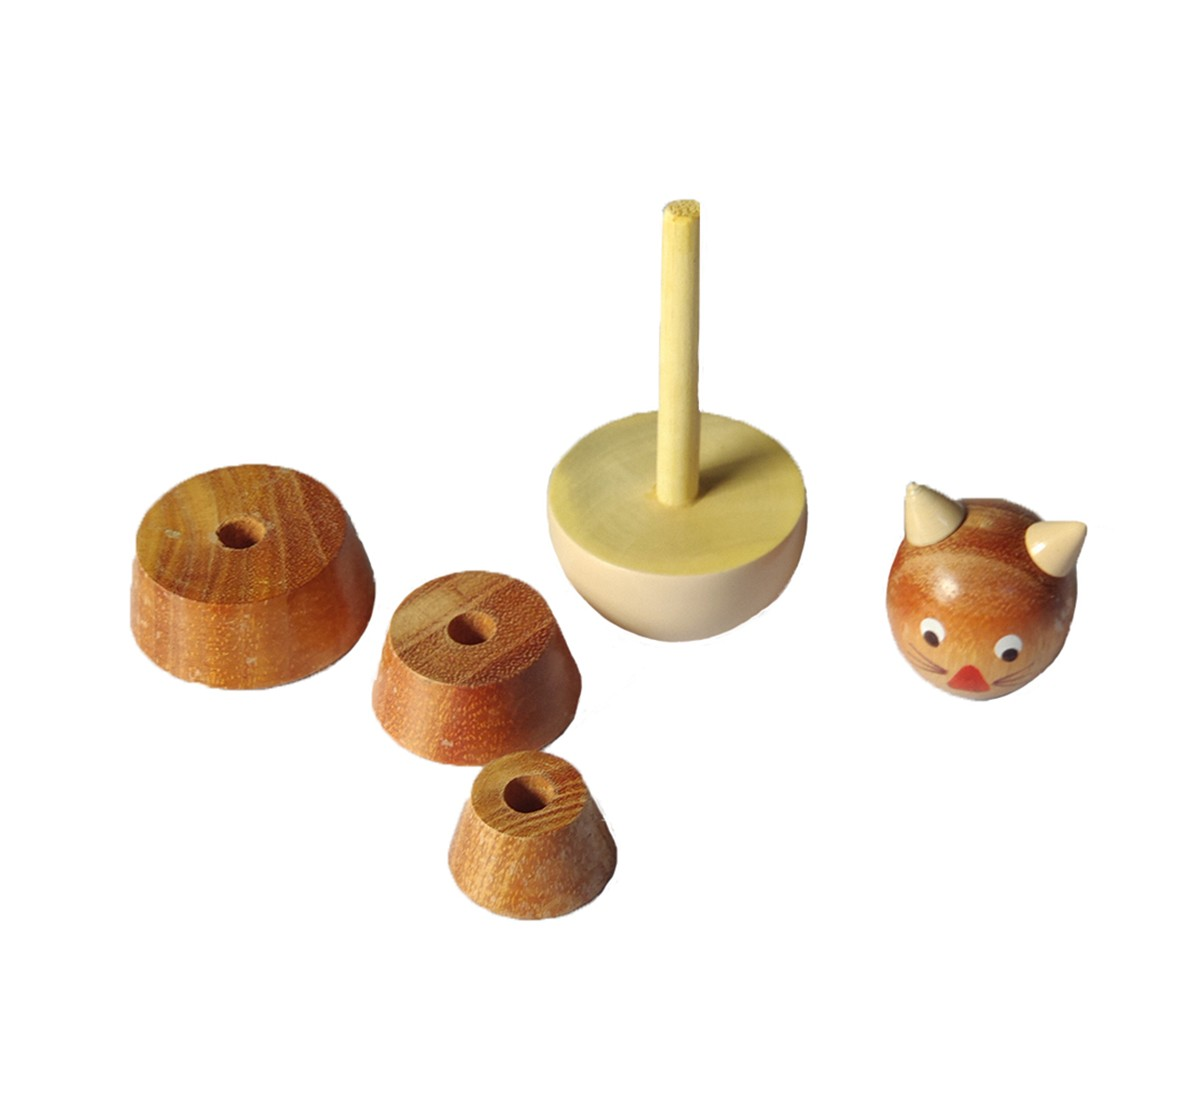 Nurture India Wooden Cat Counting Set Wooden Toys for Kids age 12M+